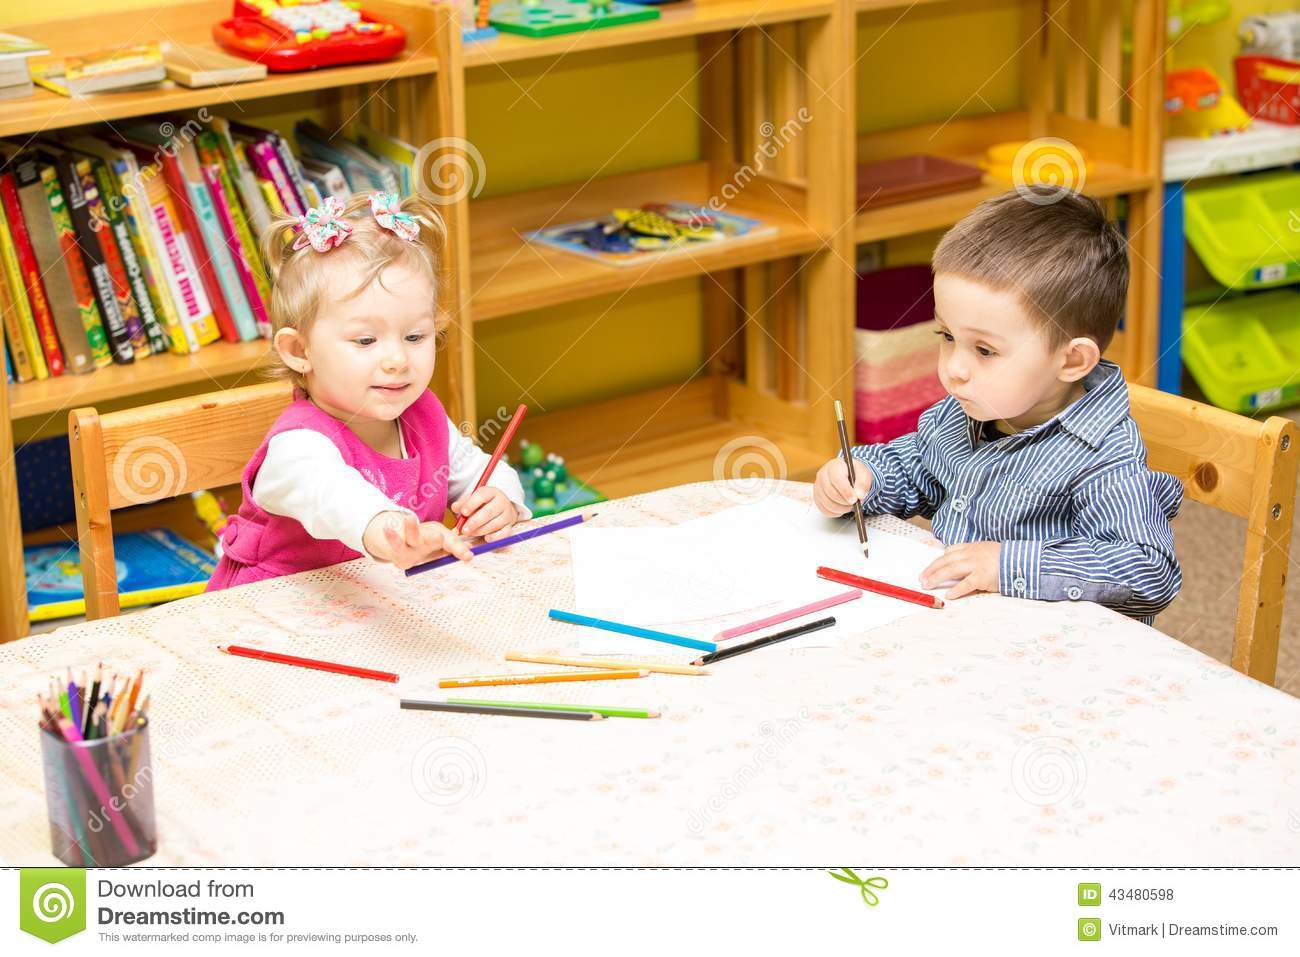 Kinder Garden: Two Little Kids Drawing With Colorful Pencils In Preschool